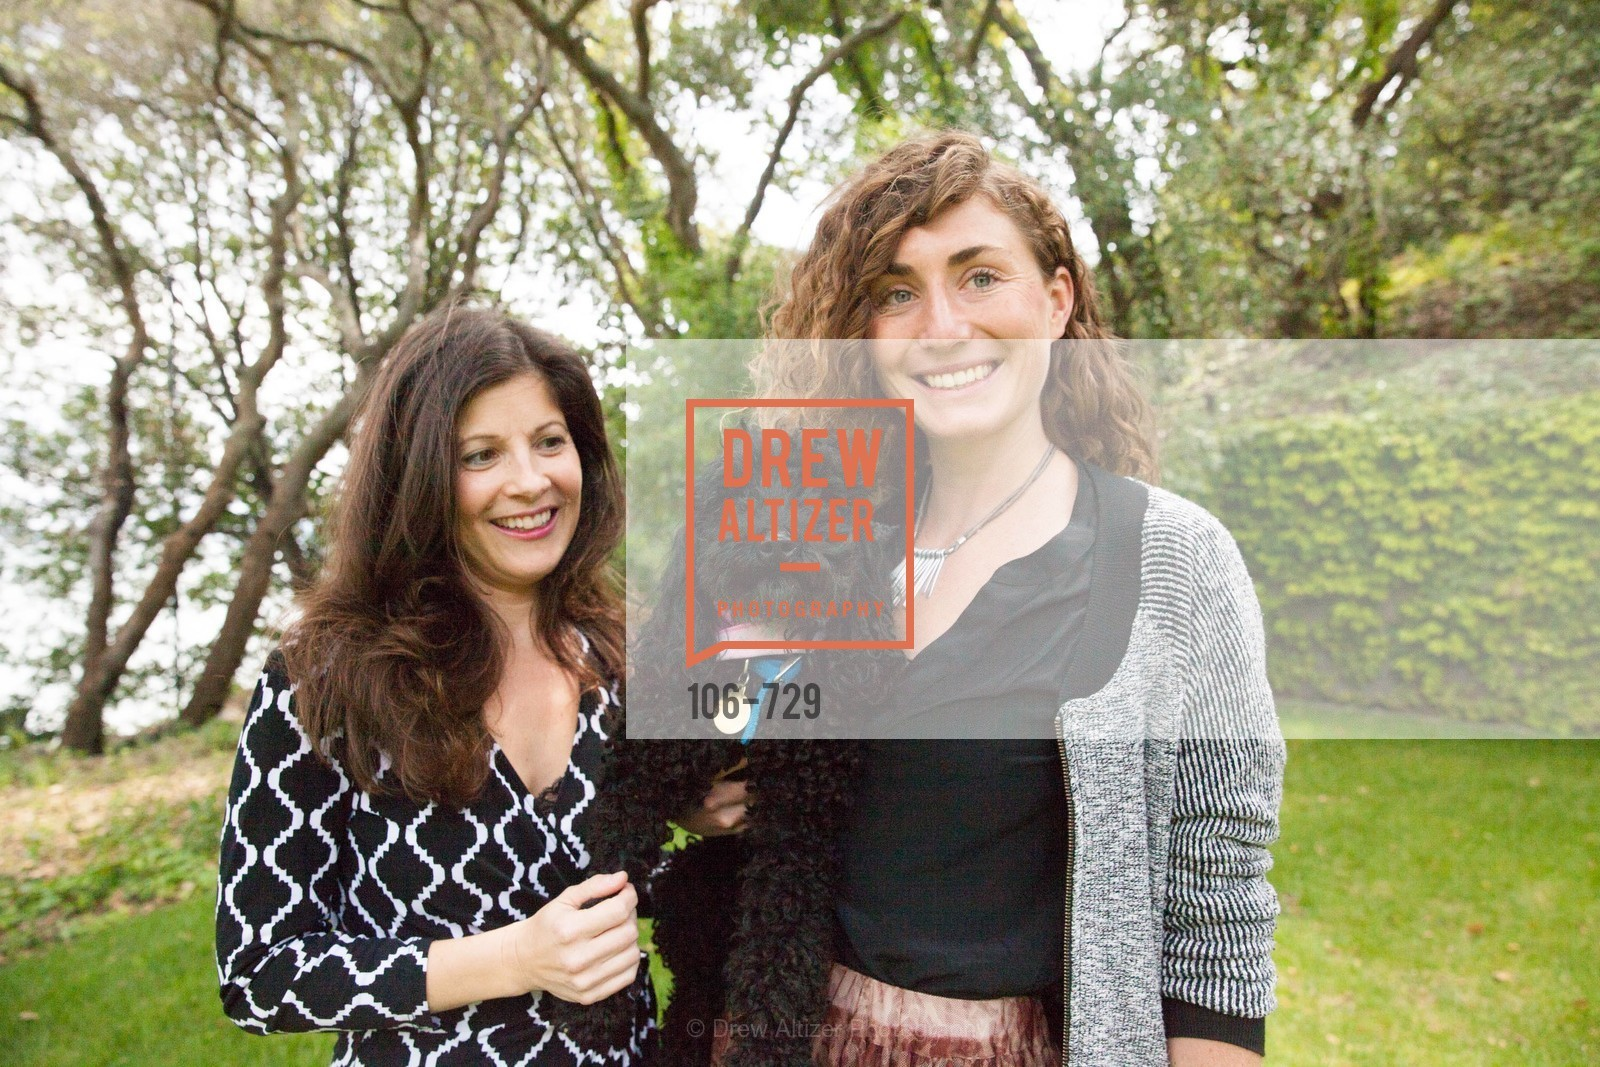 Erica Williams, Isabelle Drever, THE TRUST FOR PUBLIC LAND Luncheon Hosted by THE DREVER FAMILY FOUNDATION, US, May 14th, 2015,Drew Altizer, Drew Altizer Photography, full-service agency, private events, San Francisco photographer, photographer california